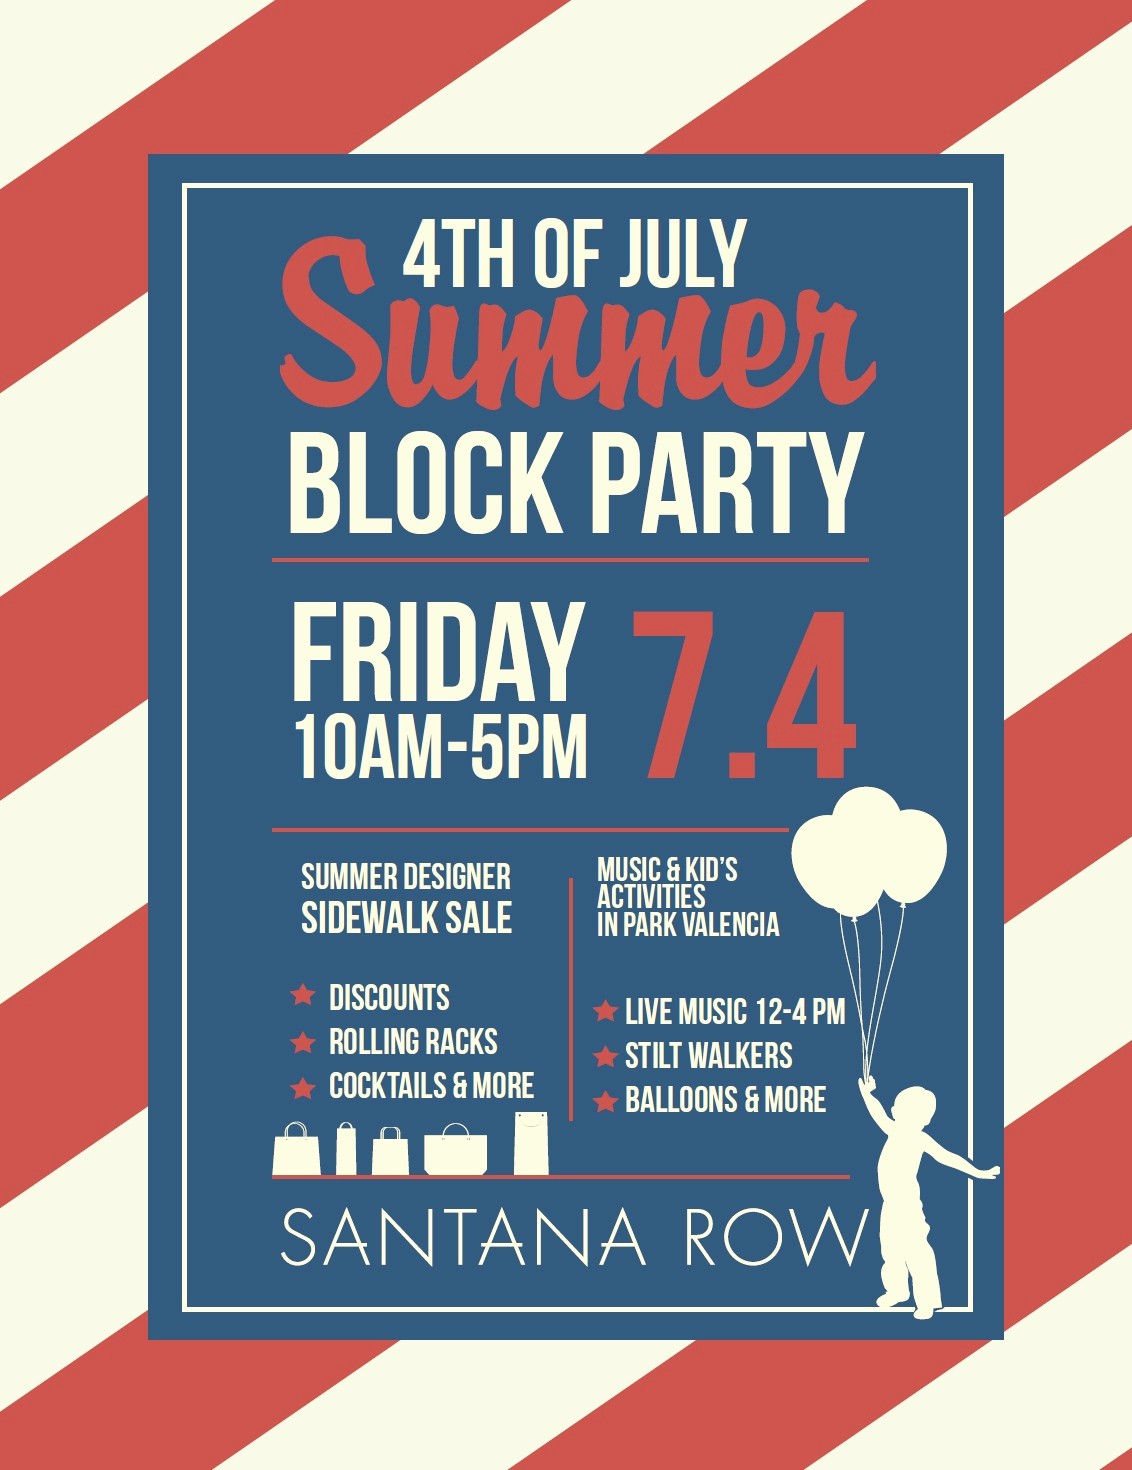 Free Block Party Flyer Template Lovely Block Party Flyer Template Gallery Professional Report